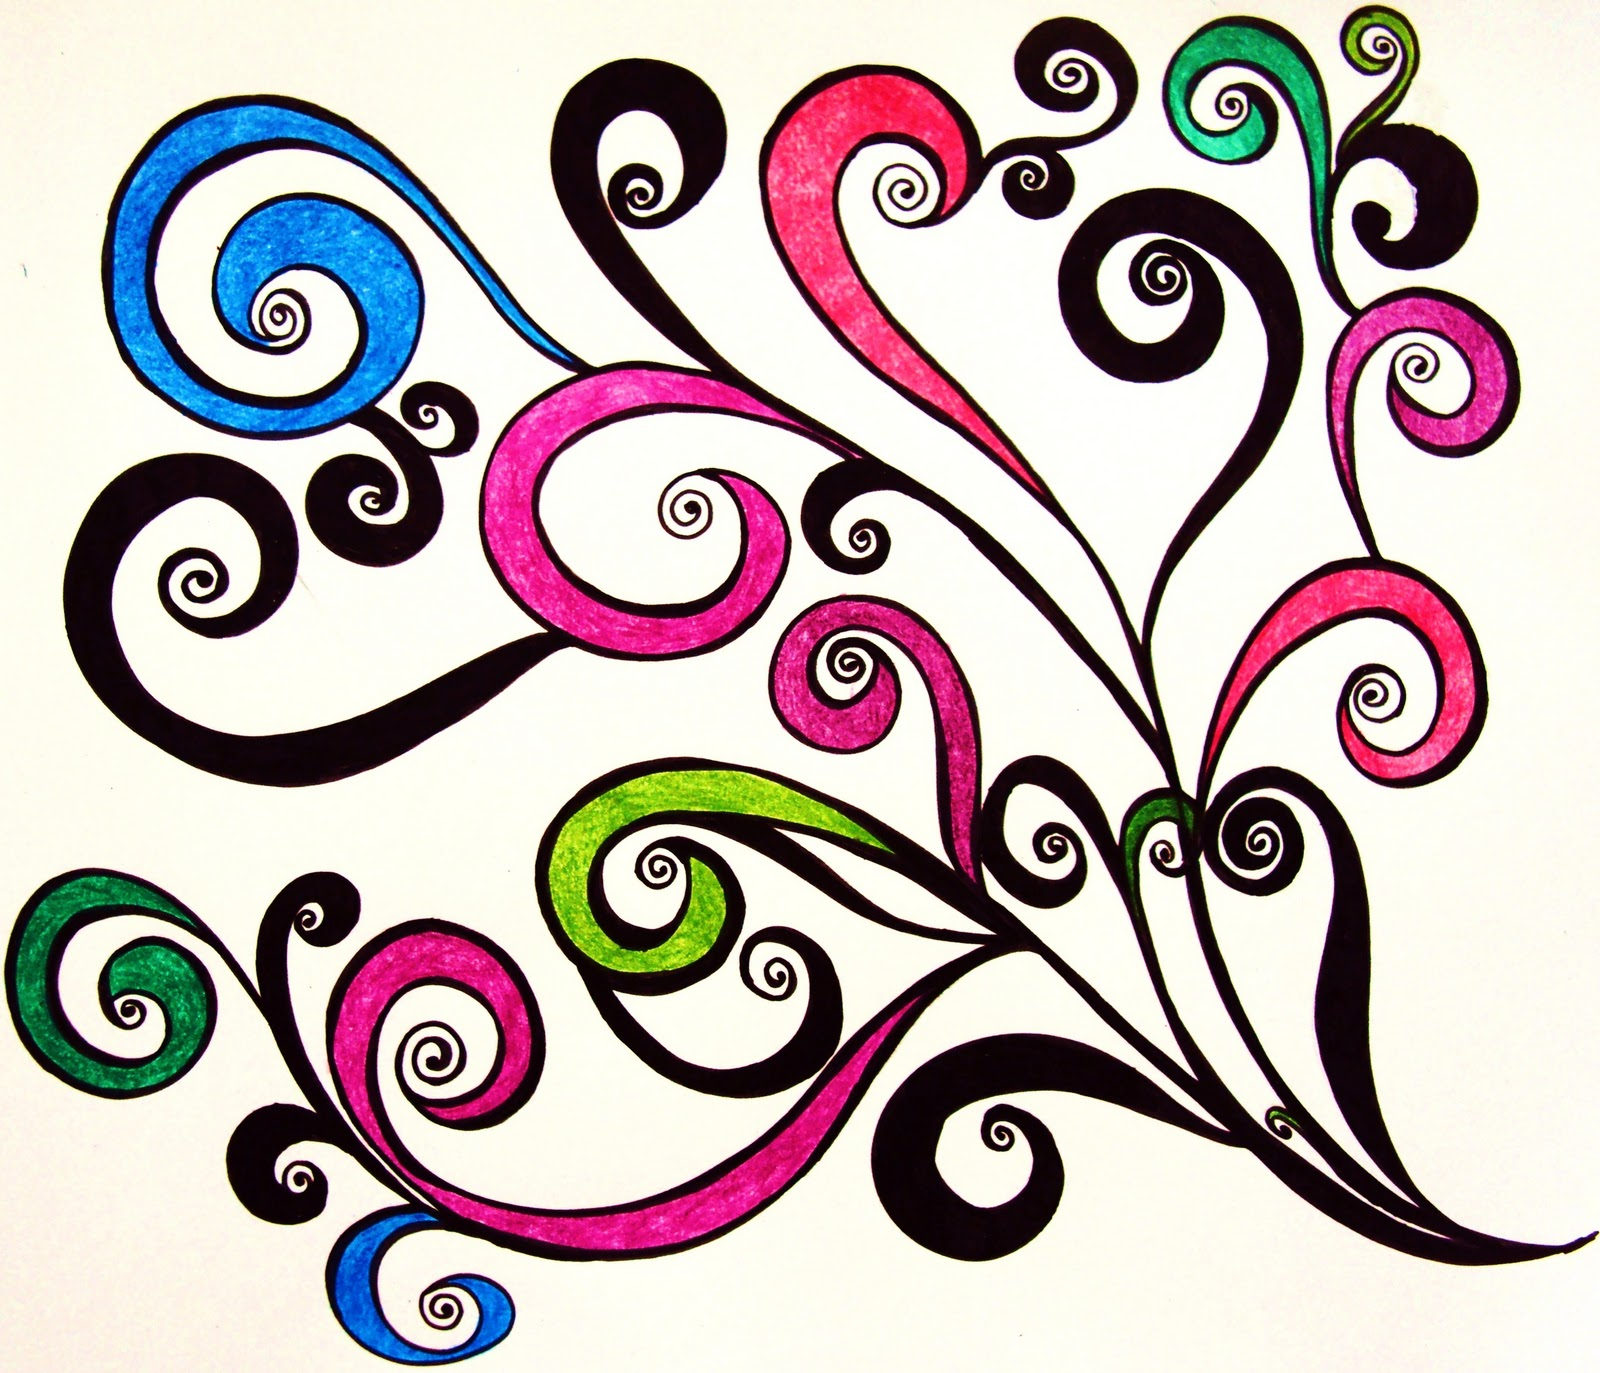 11 Cool Swirly Designs Patterns Images